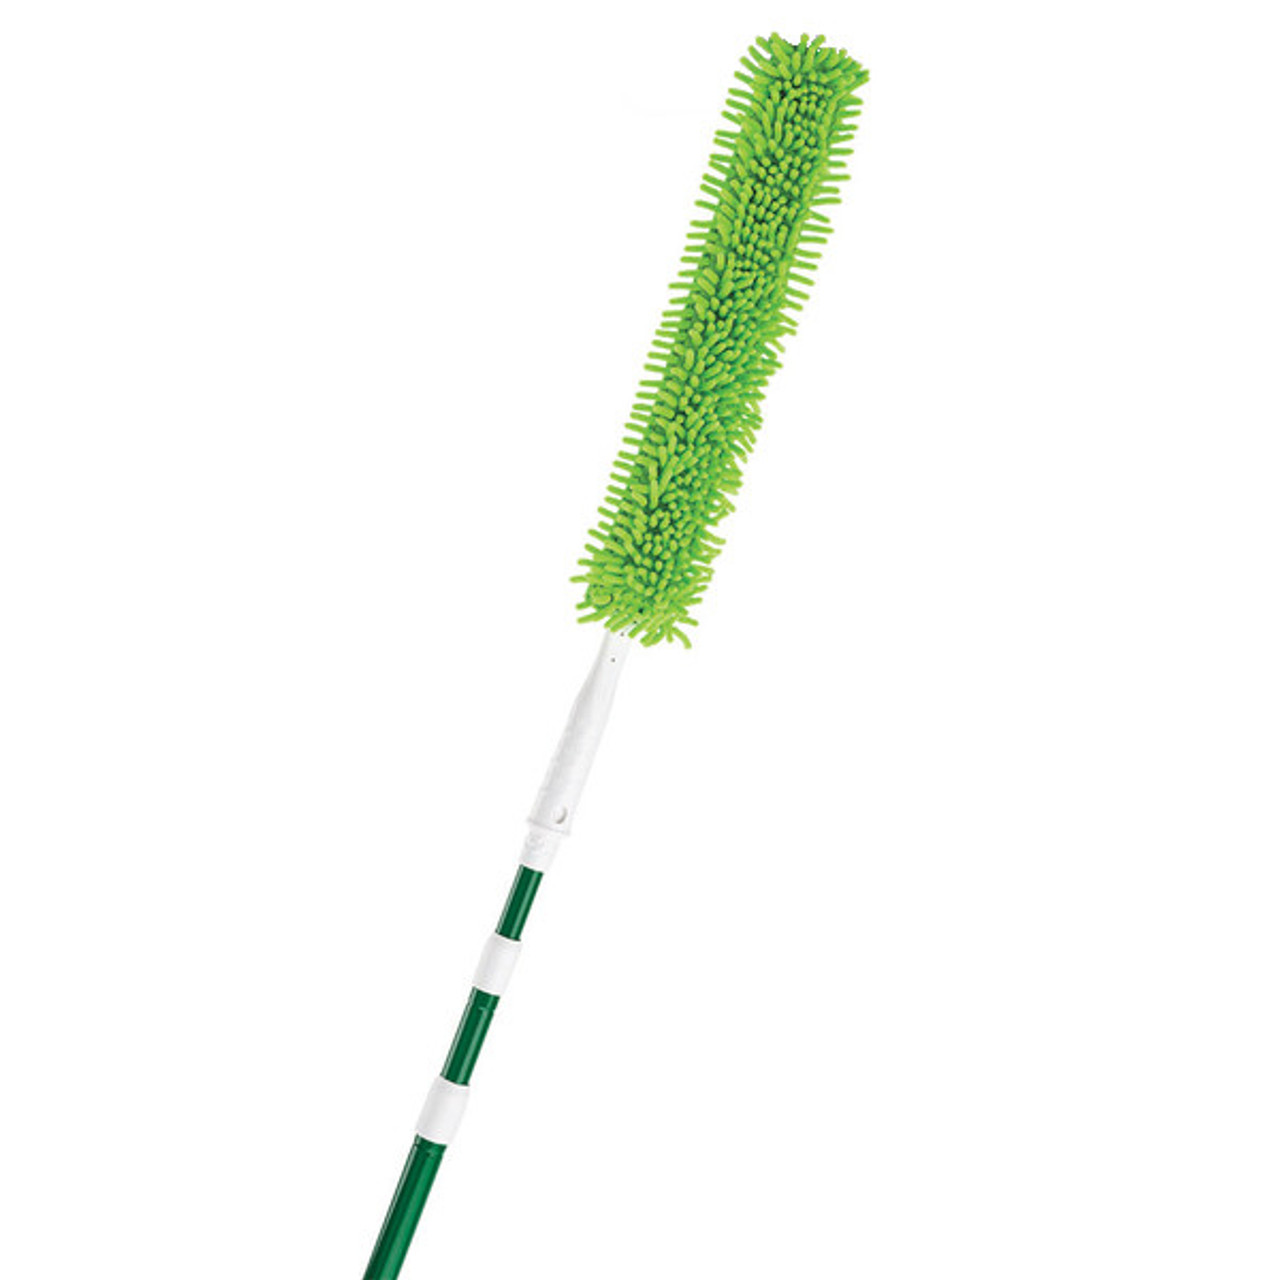 The Libman 94 Duster Extends up to 5 ft and has a flexible head that allows you to get around objects and into spaces other dusters can't.